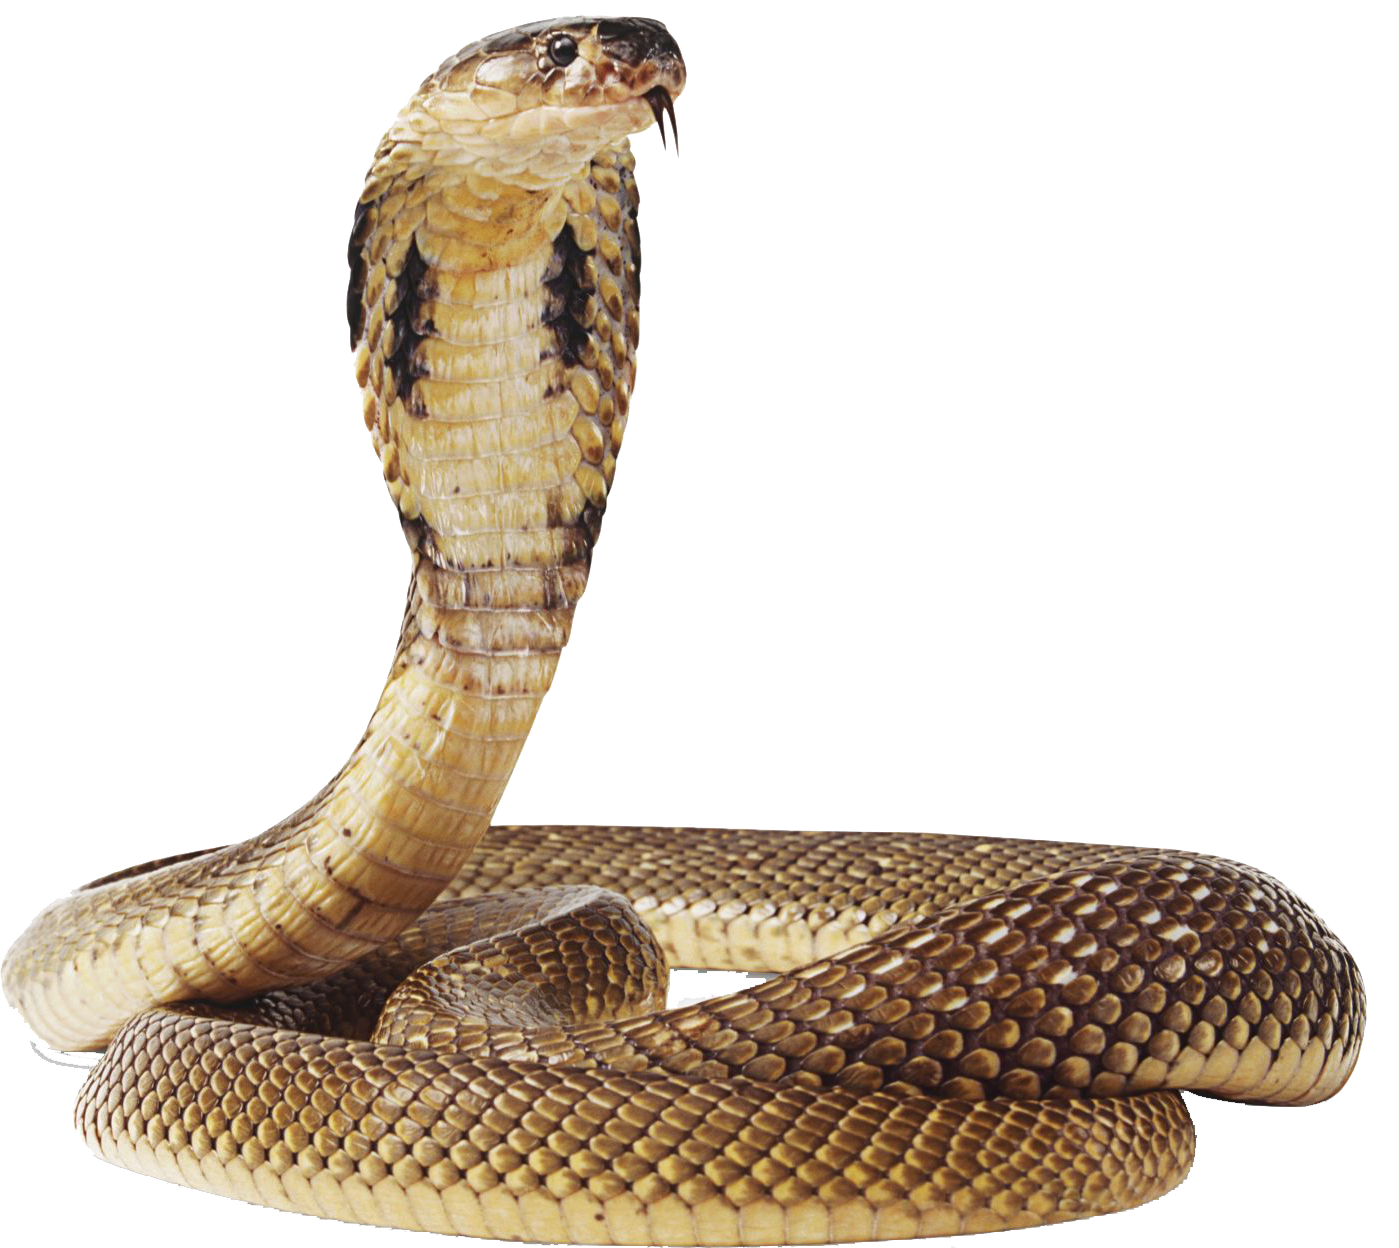 Snake HD PNG